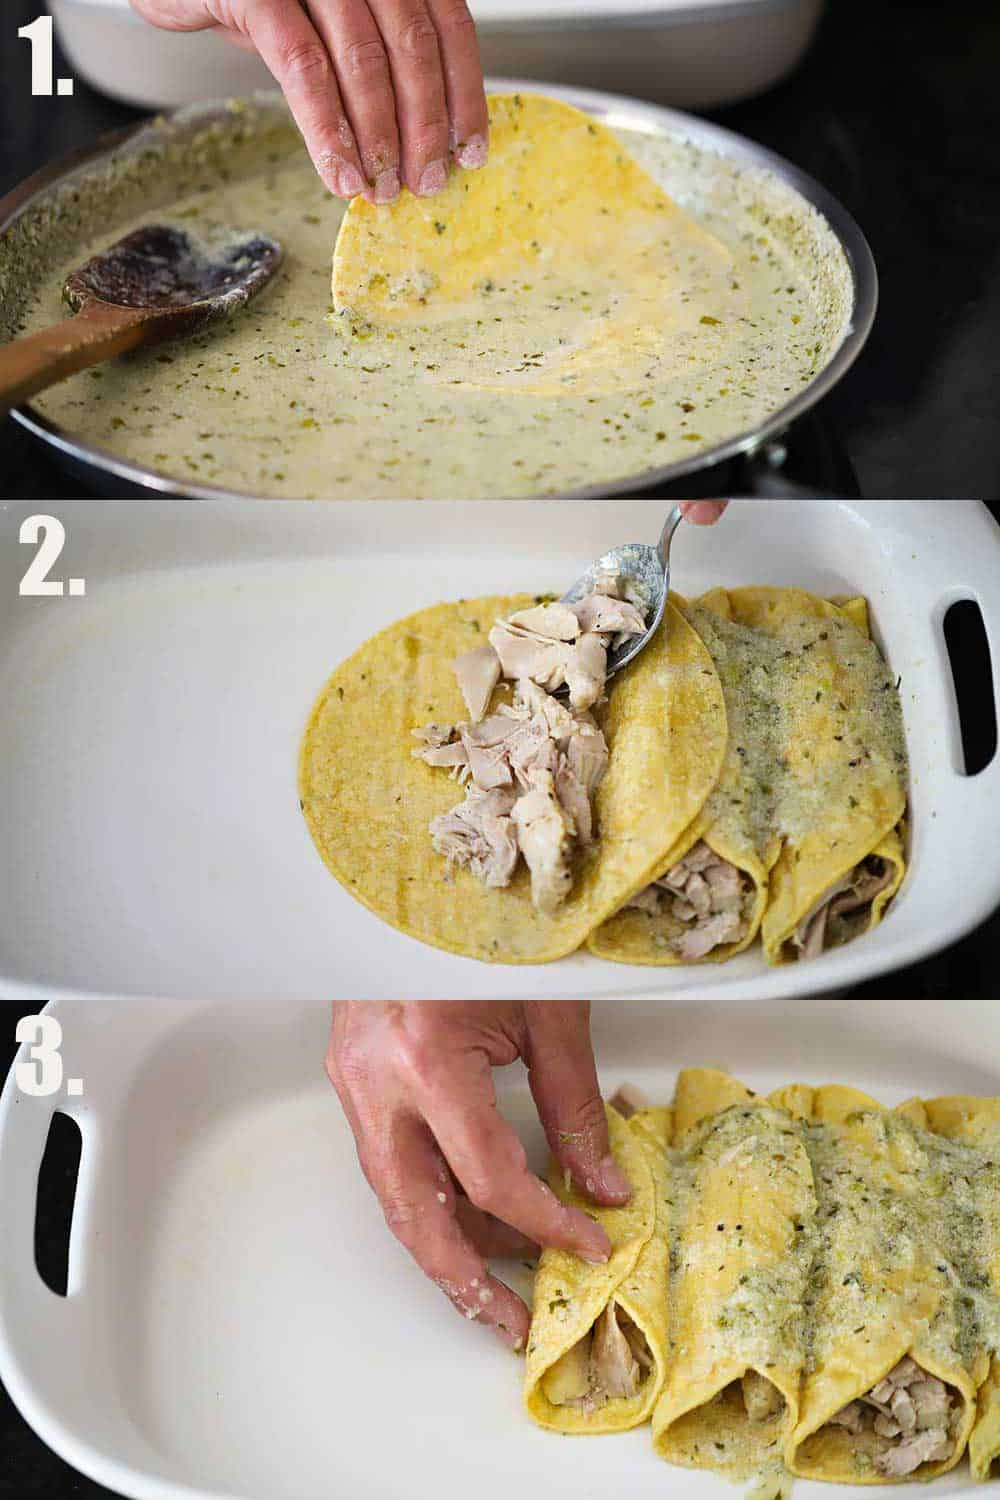 3 stacked photos, with the 1st a hand dipping a corn tortilla into a skillet of verde sauce, the 2nd a hand placing chicken inside the corn tortillas in a baking dish, and 3rd the same hand folding over the tops of the enchilada.